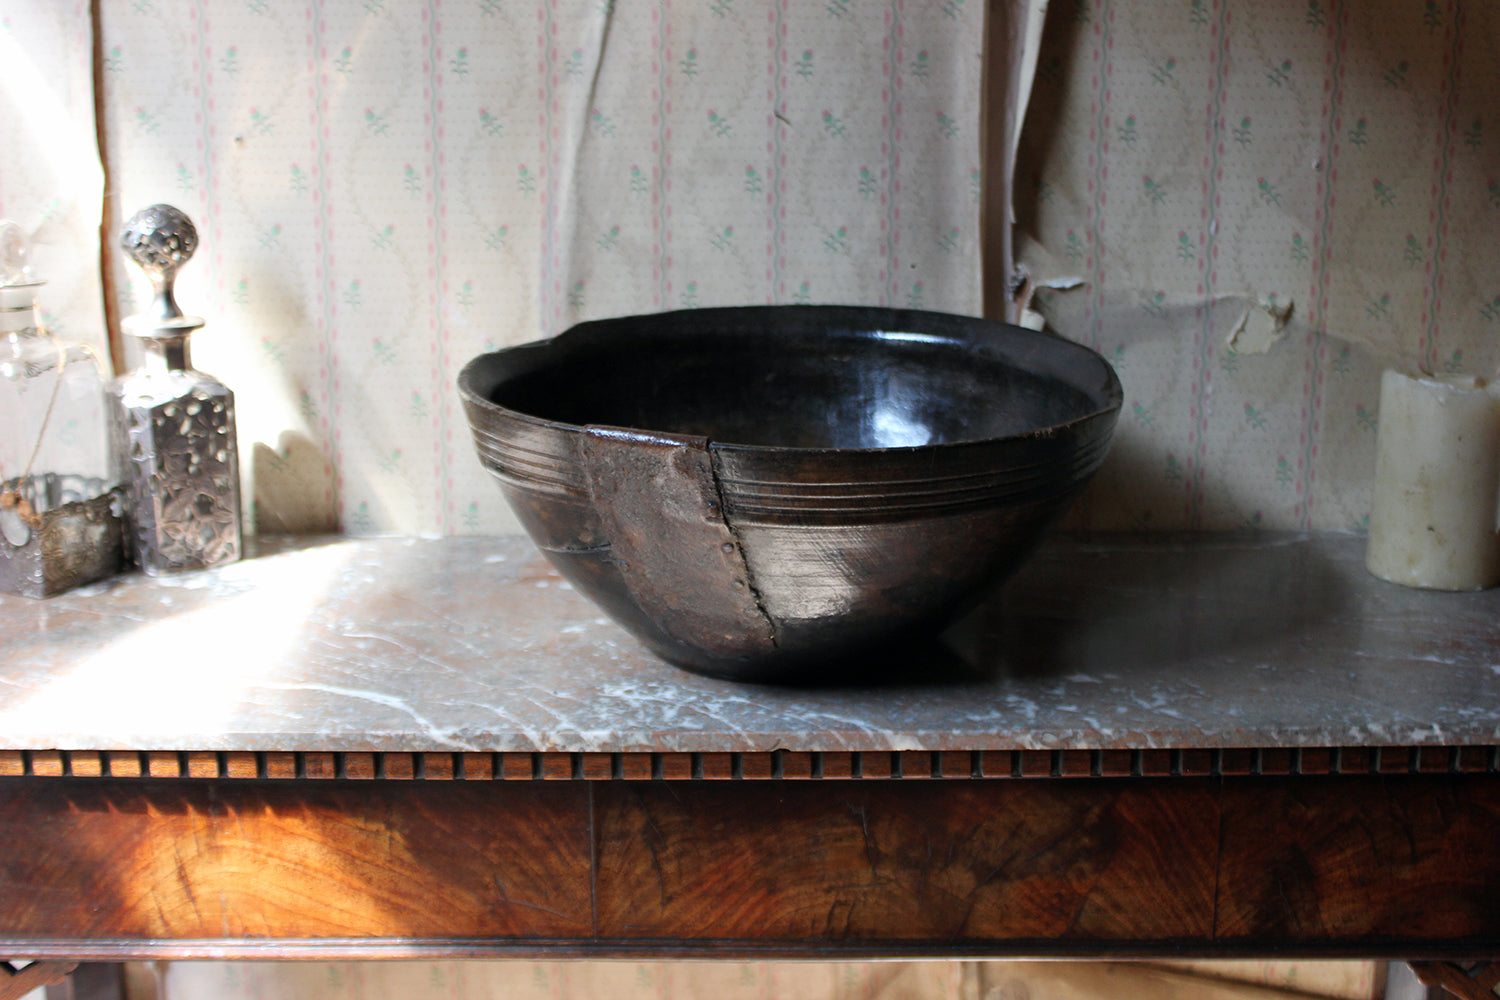 An Early 19thC Repaired Beechwood Bowl c.1830-40